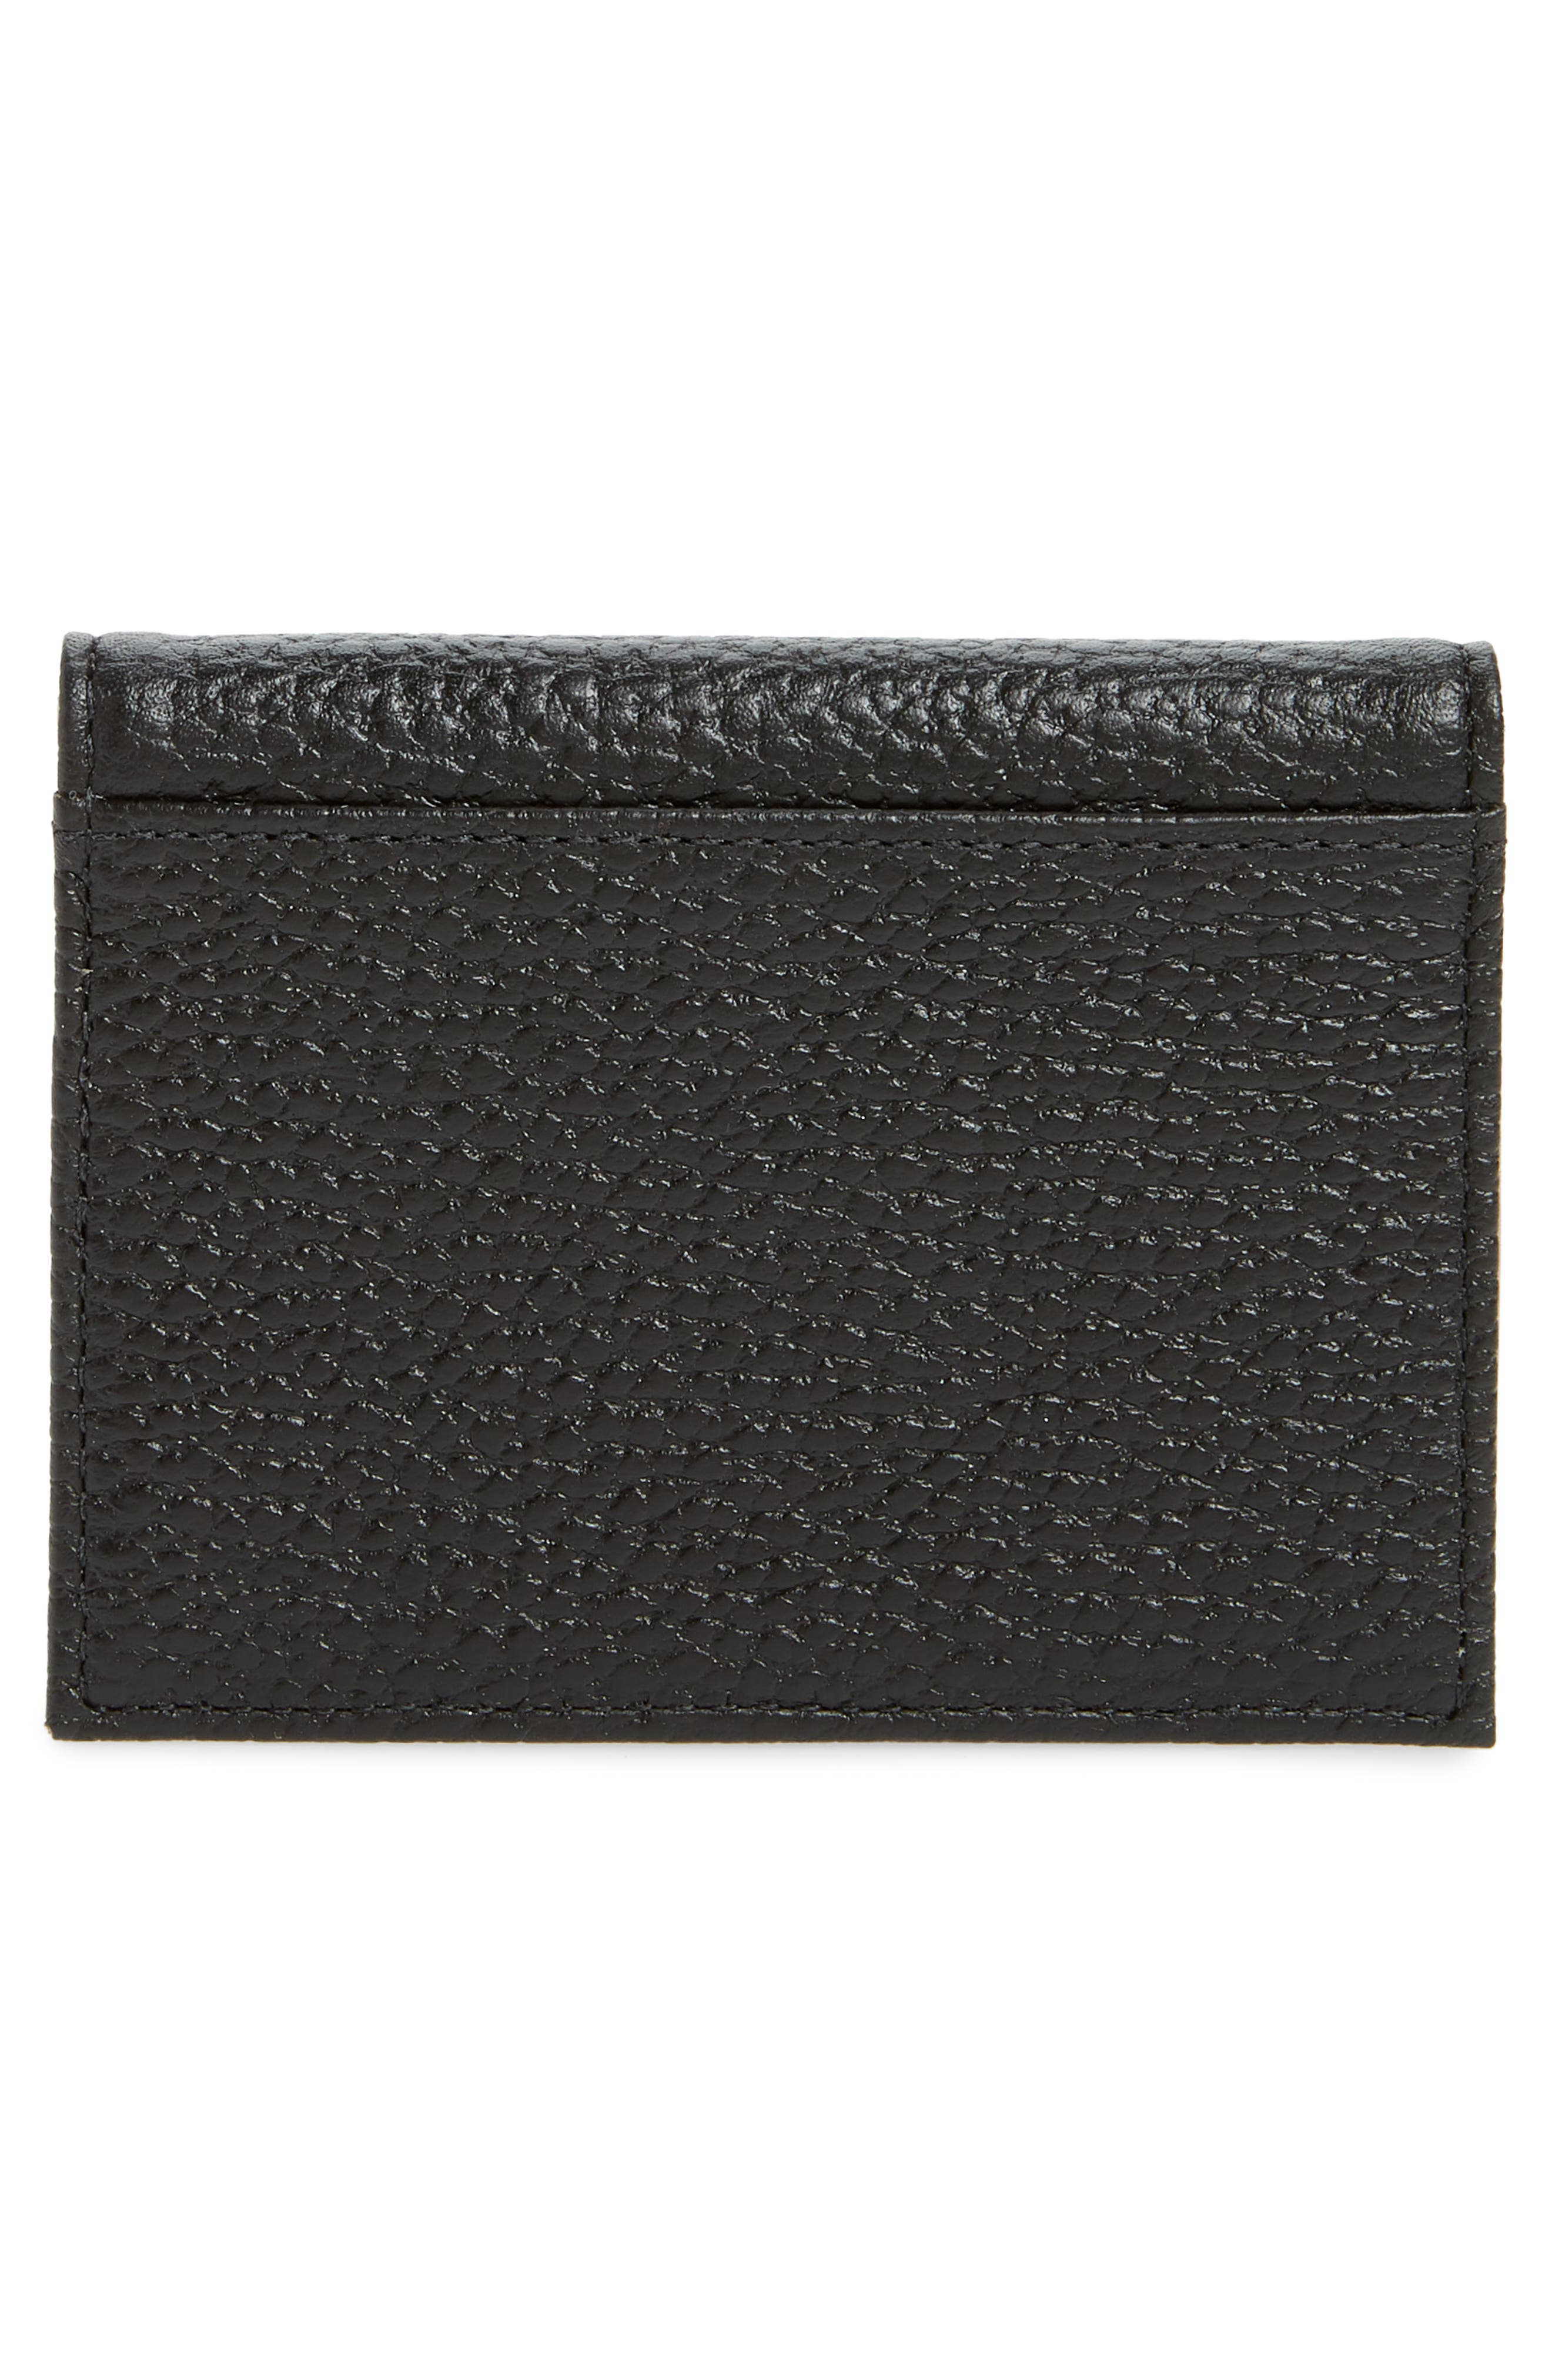 TED BAKER LONDON,                             Edyth Leather Cardholder with Mirror,                             Alternate thumbnail 3, color,                             001